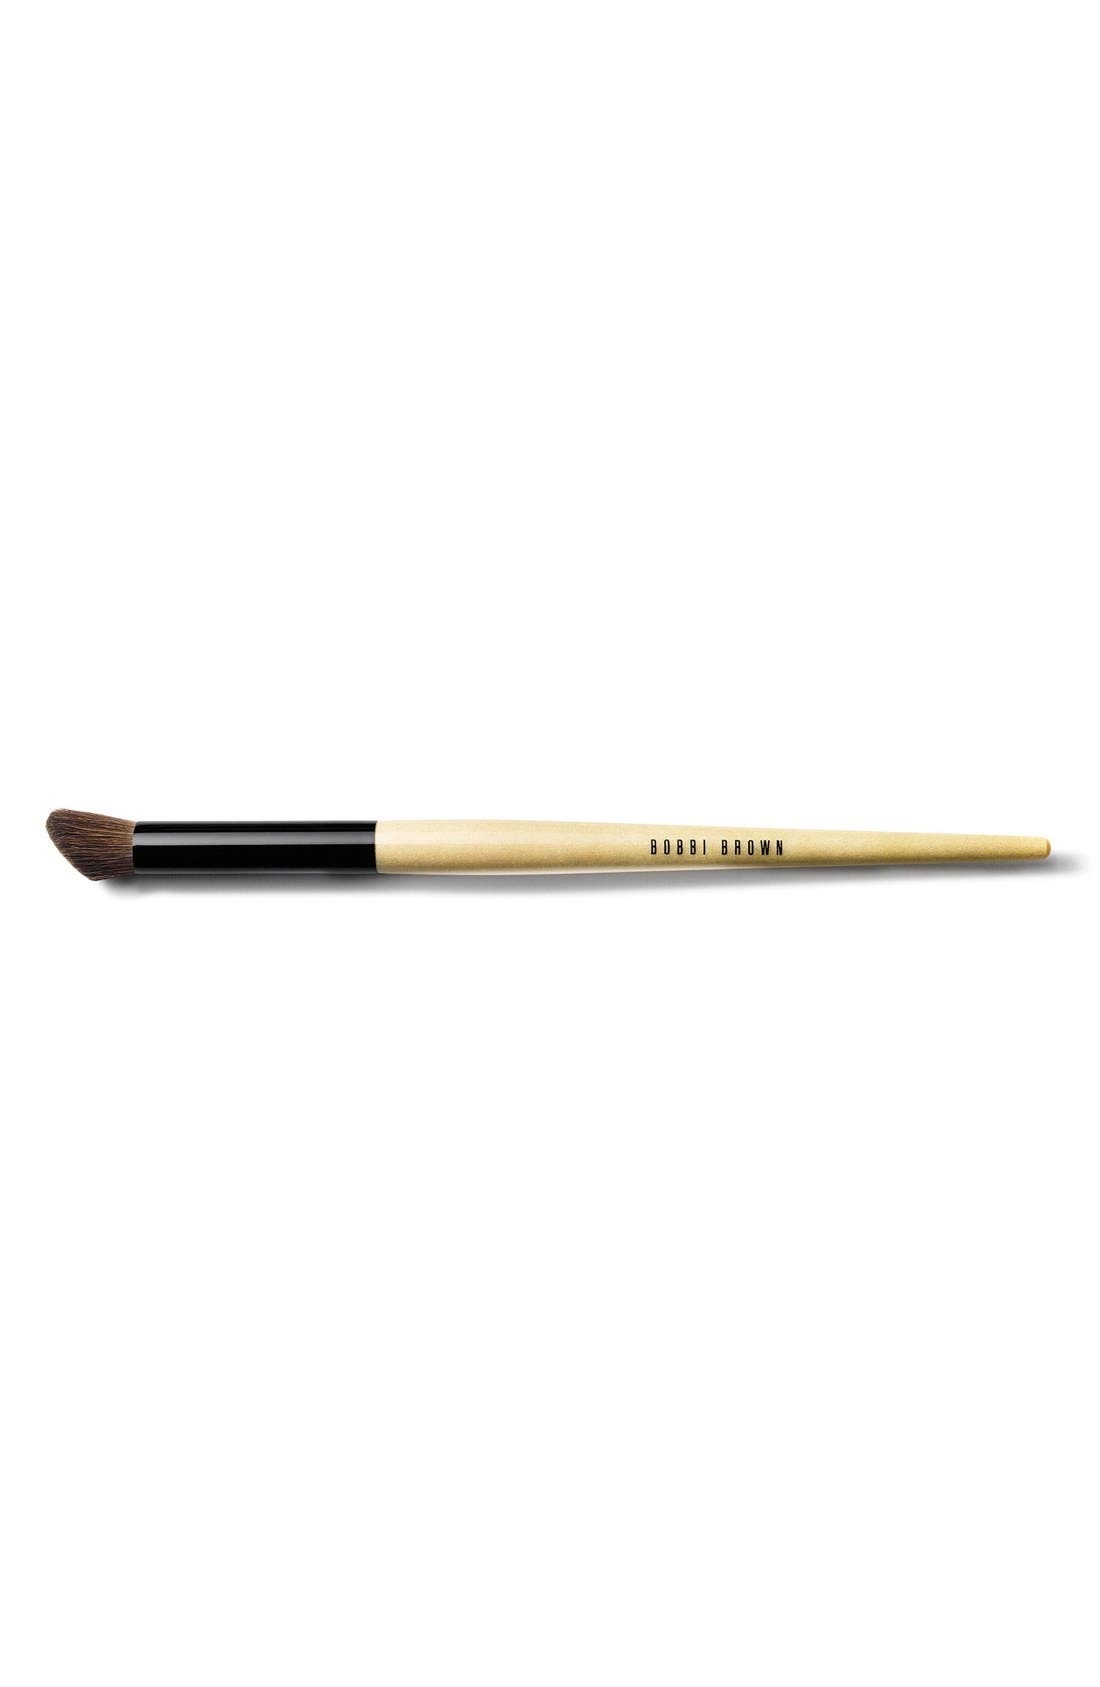 Eye Contour Brush,                             Main thumbnail 1, color,                             000